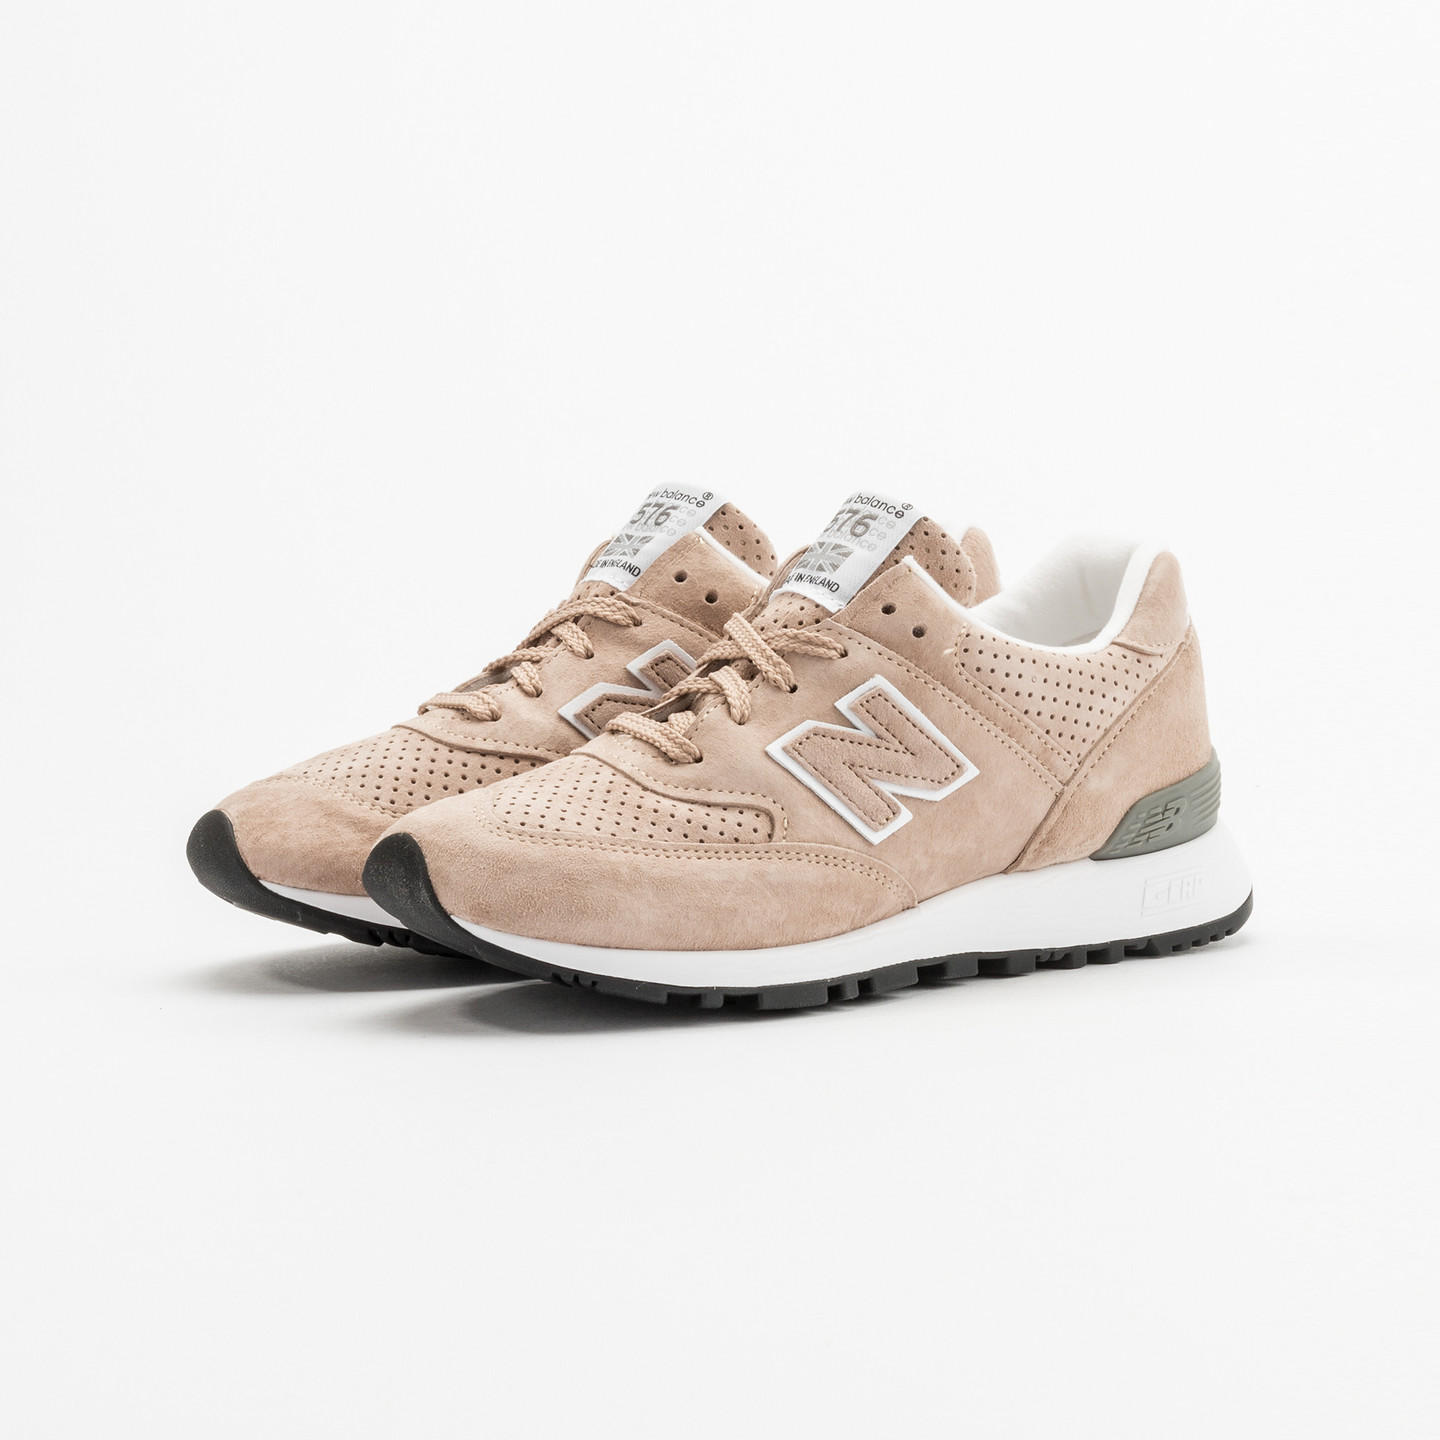 New Balance W576 TTO - Made in UK Light Brown / White W576TTO-37.5